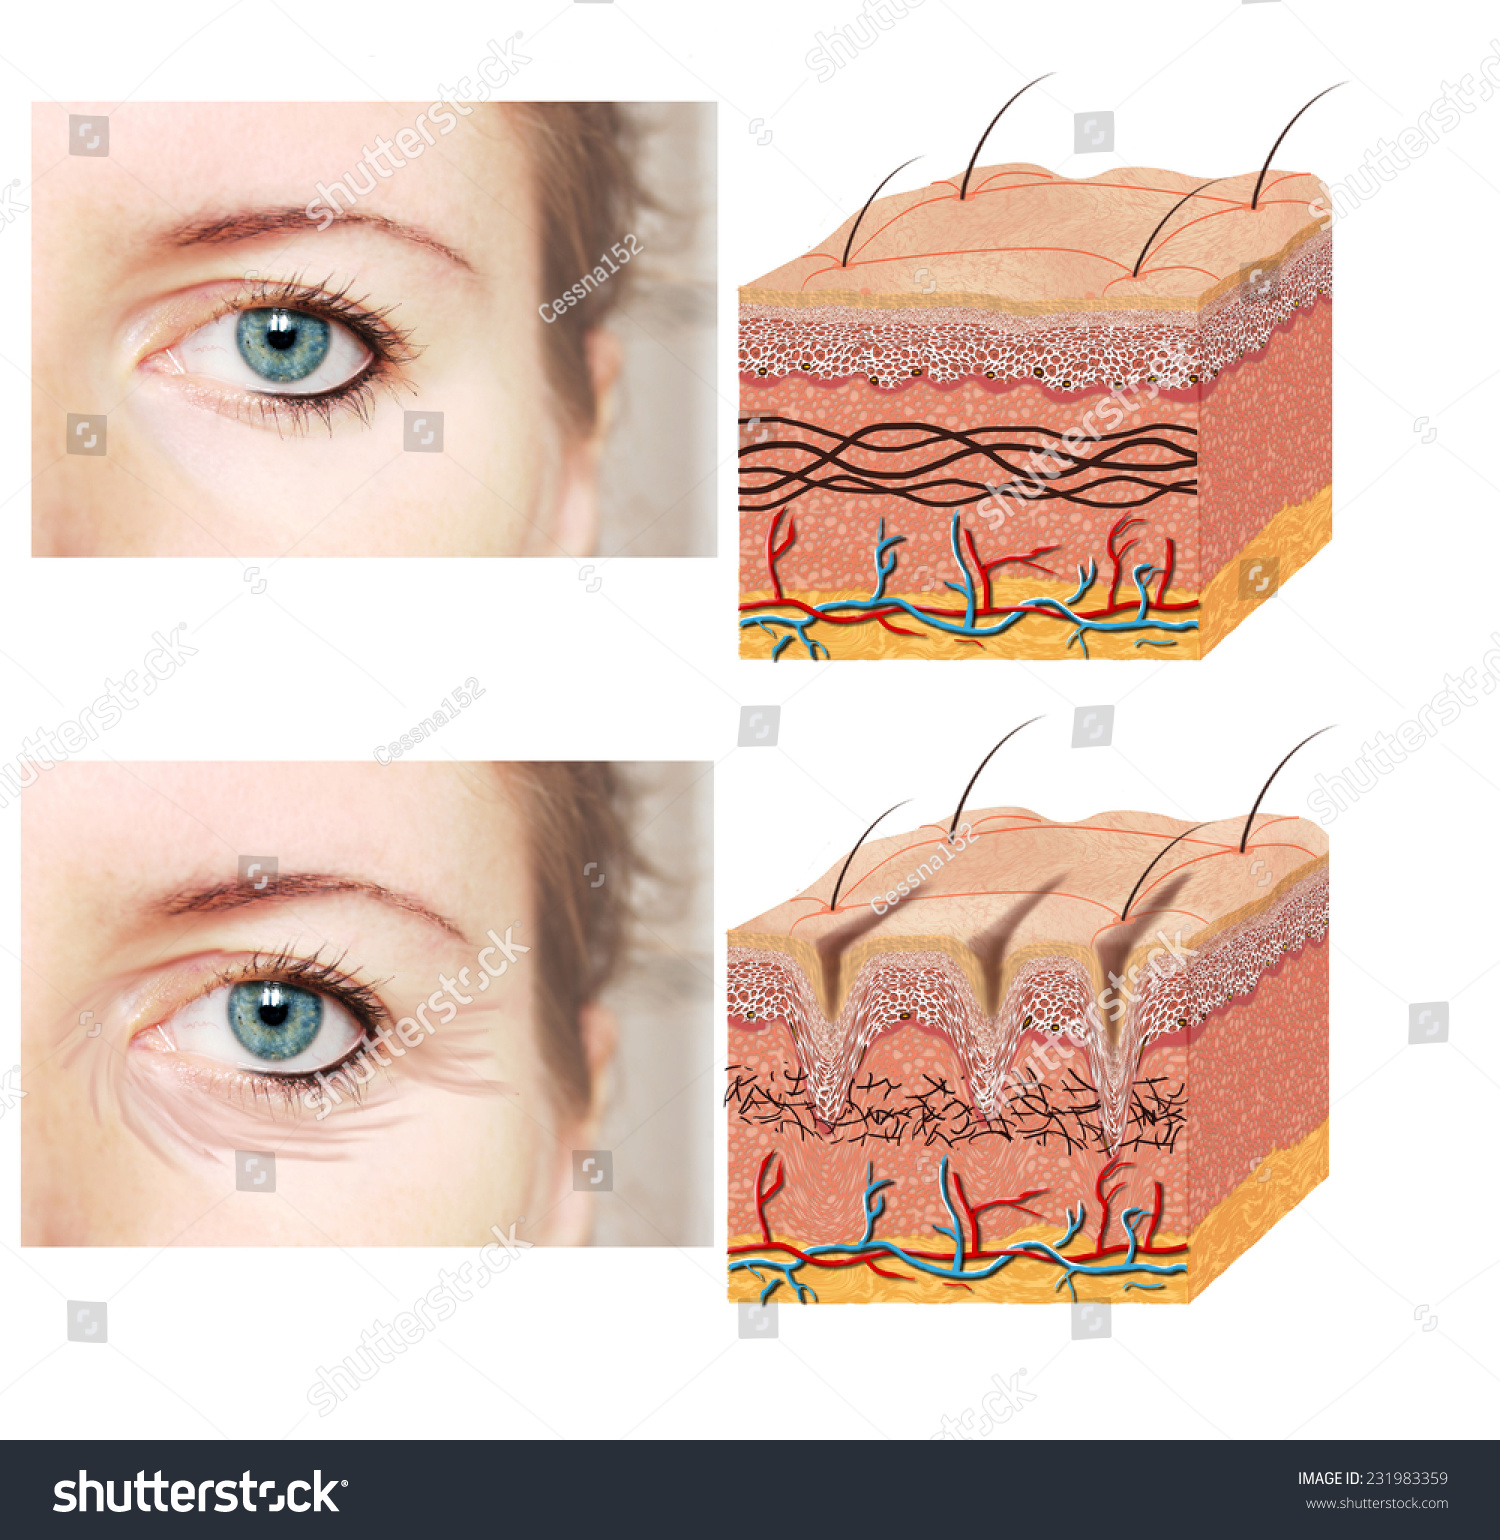 skin cross section diagram 2002 gmc yukon radio wiring royalty free anatomy younger and 231983359 stock older comparation good with wrinkles illustration of showing young